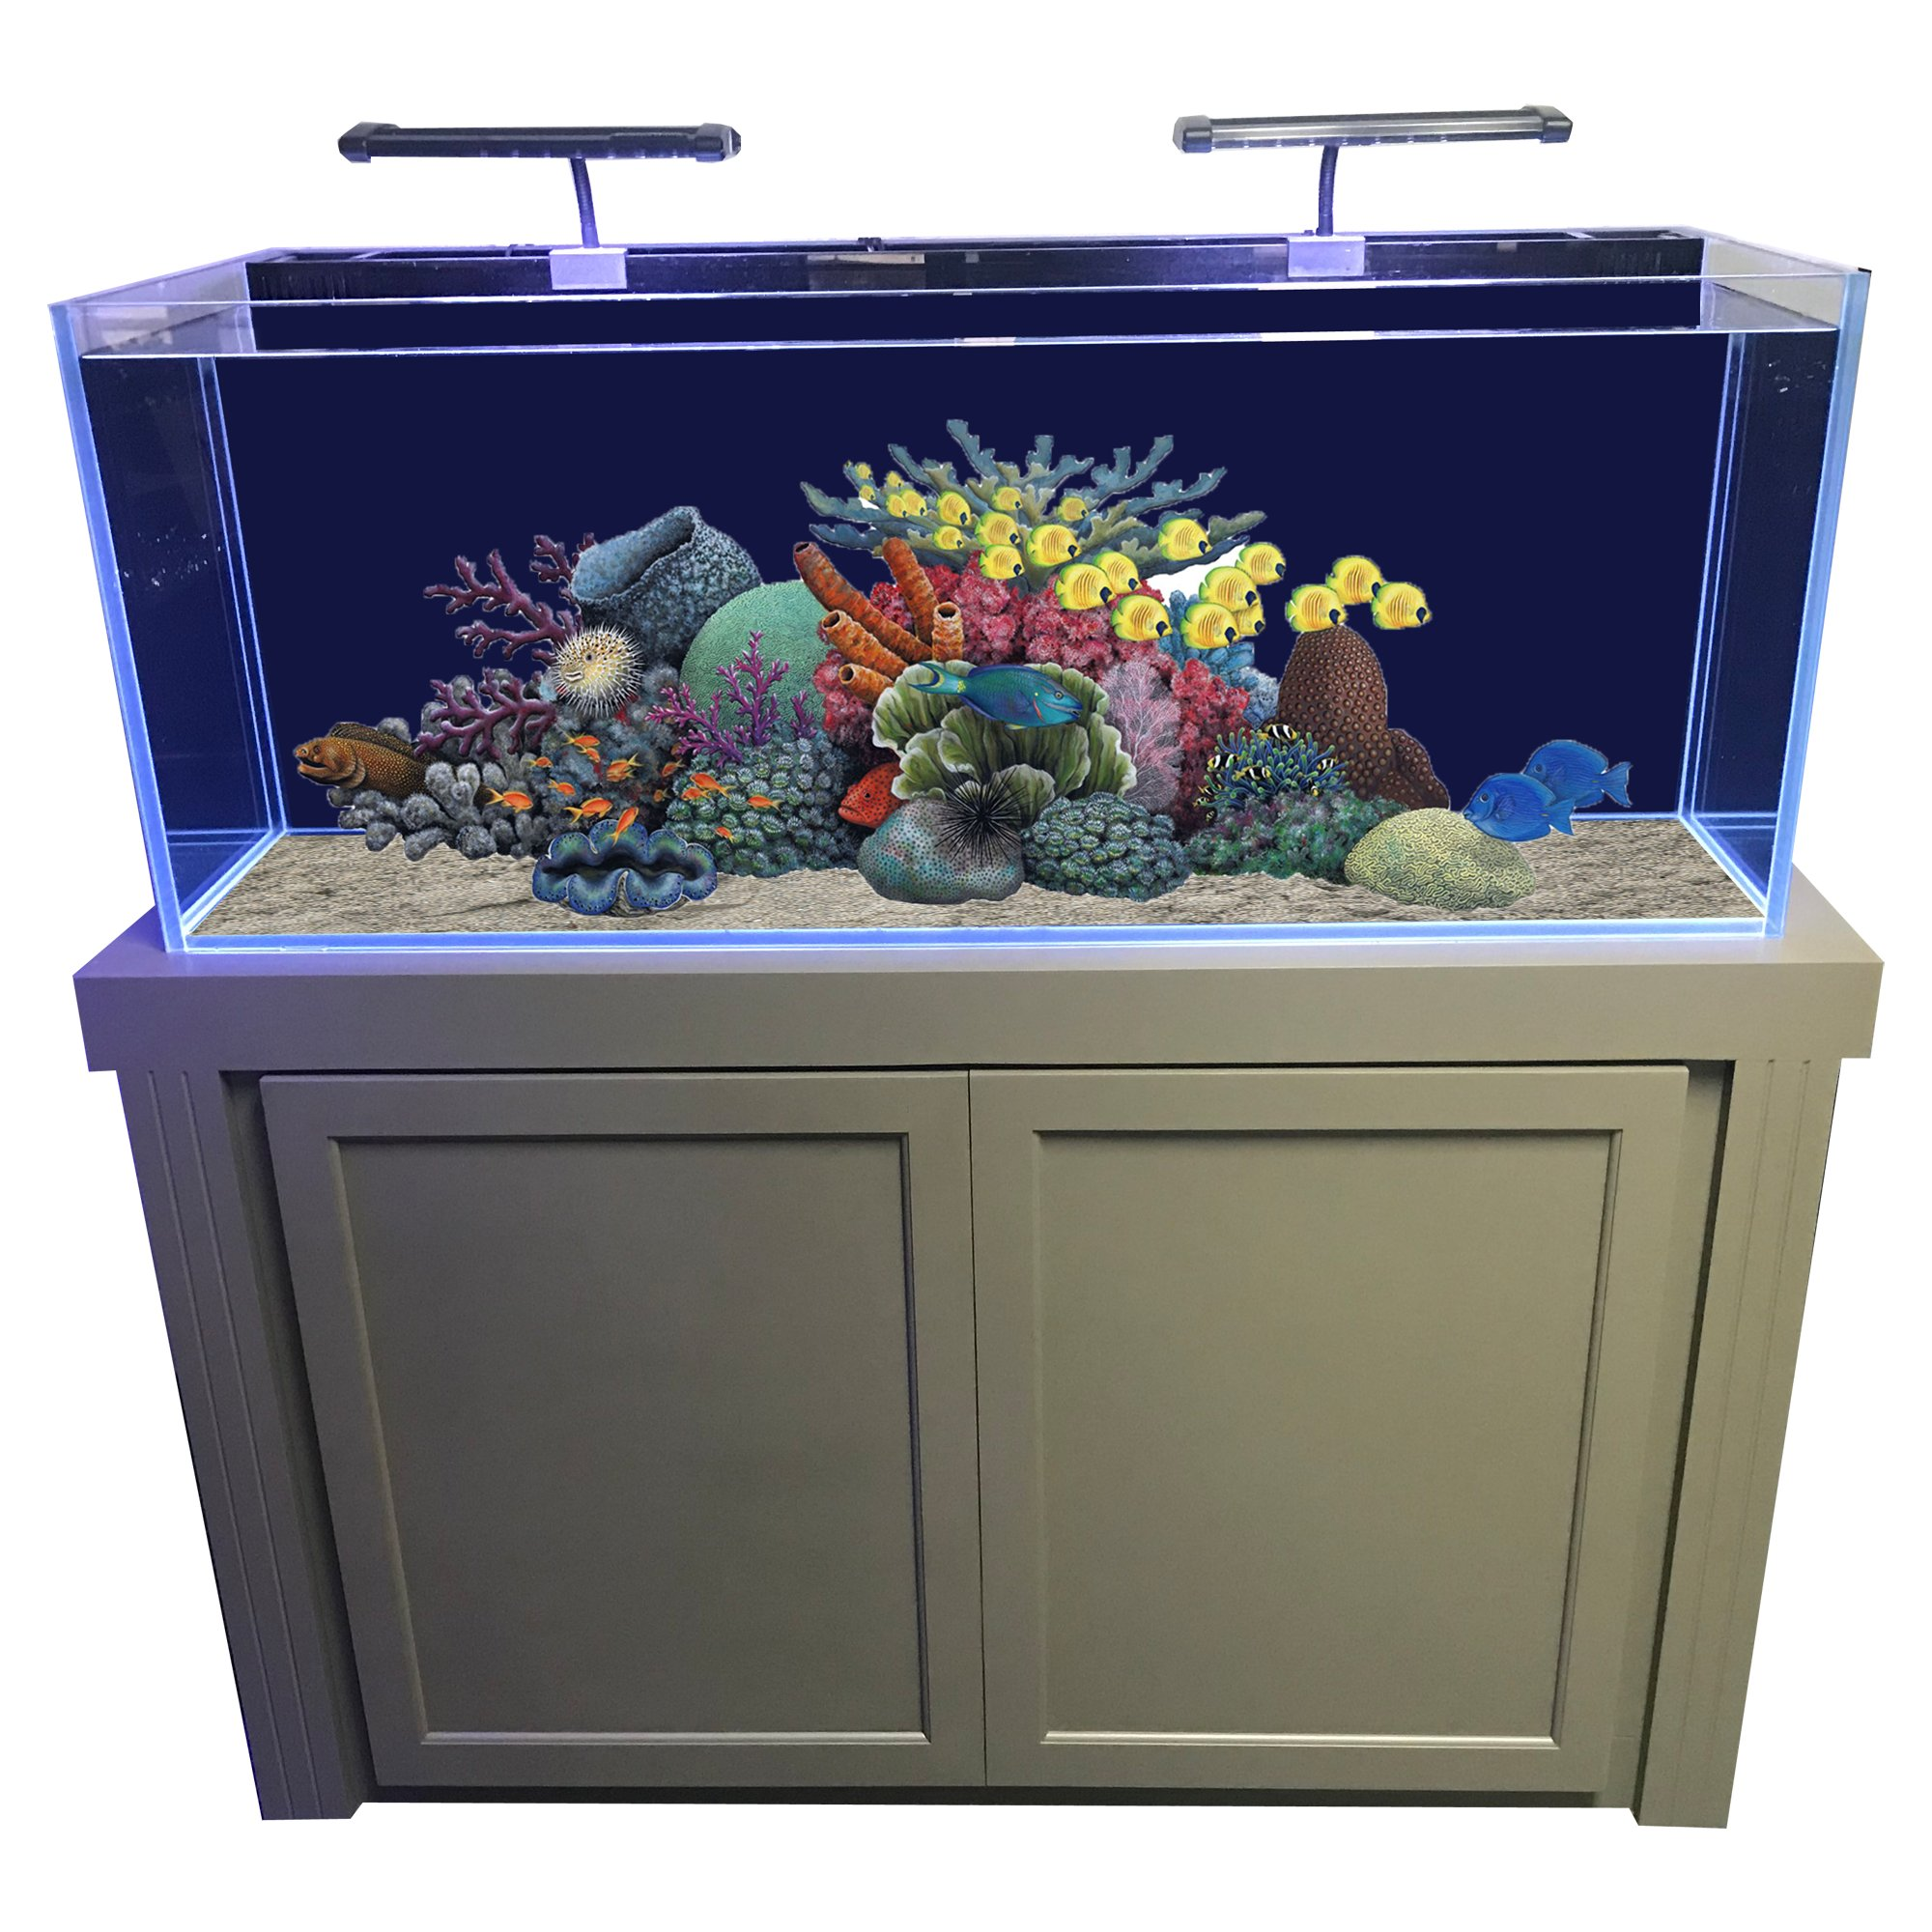 R j enterprises fusion x rimless glass tank cabinet for 55 gallon fish tank petco